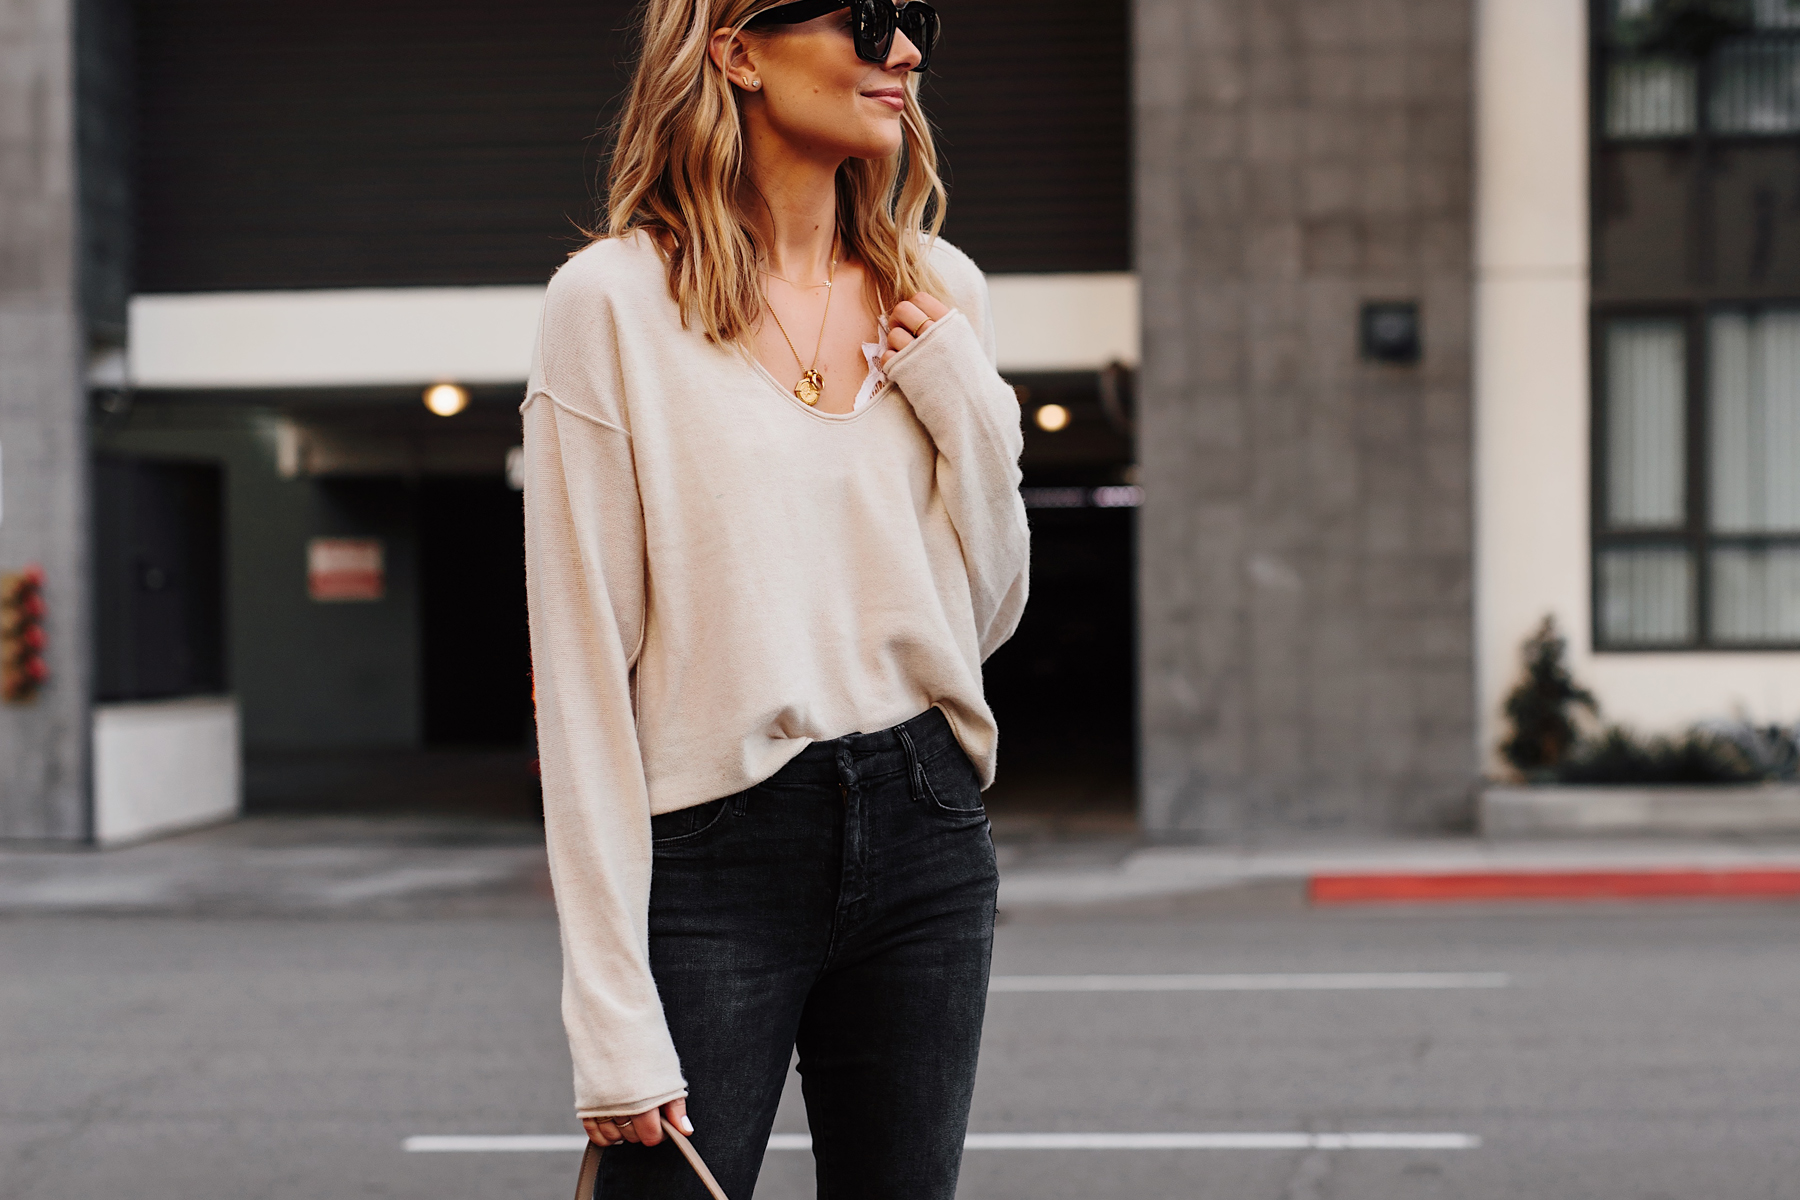 Blonde Woman Wearing Beige Sweater White Lace Bralette Missoma Gold Necklaces Dainty Gold Jewelry Fashion Jackson San Diego Fashion Blogger Street Style